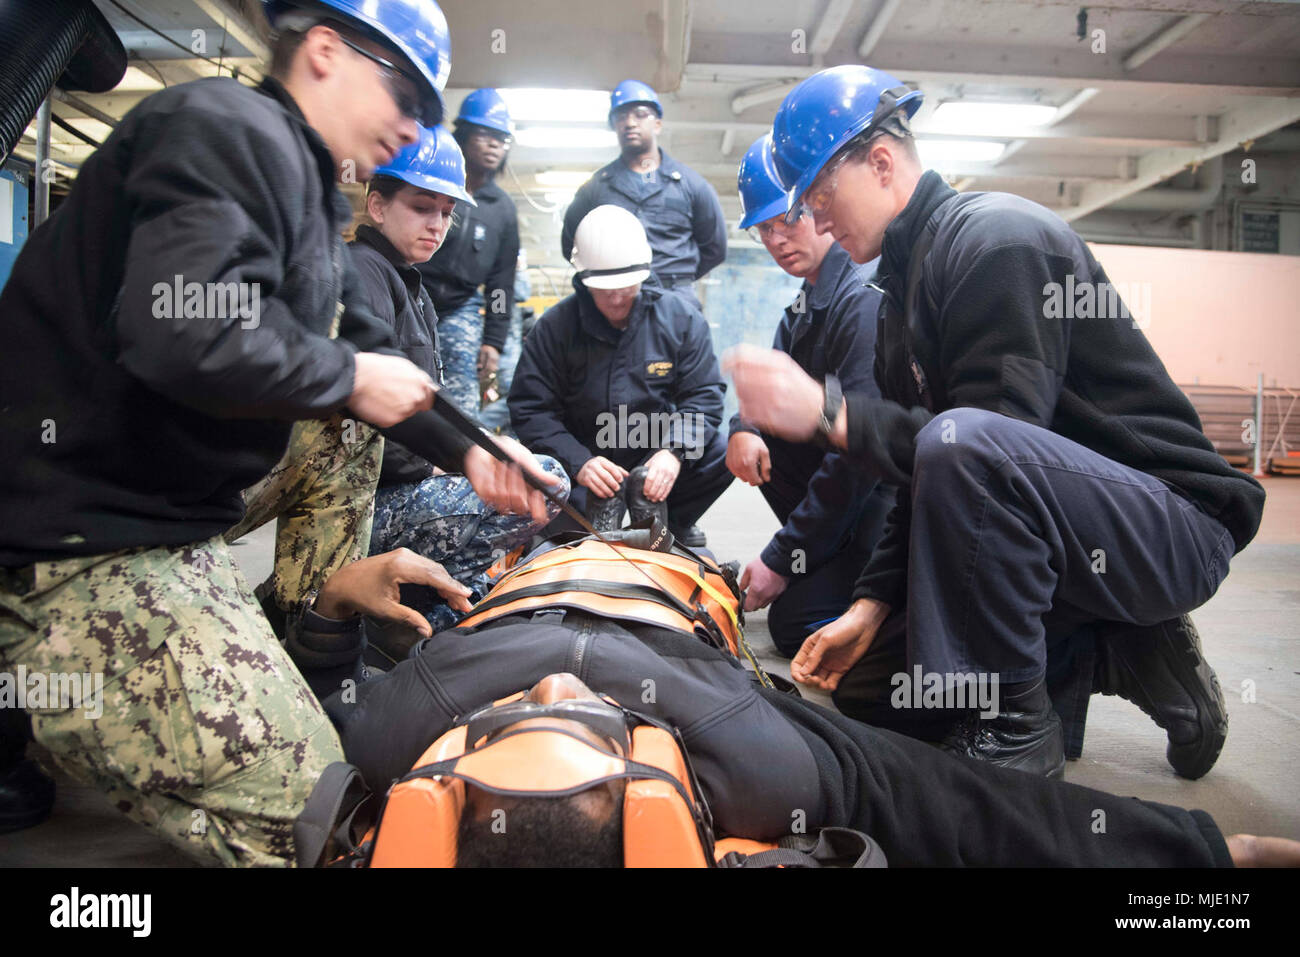 Bearer Stock Photos Images Page 23 Alamy Sakura Moth Hanger 160 Gr Va March 6 2018 Sailors Assigned To The Aircraft Carrier Uss Dwight